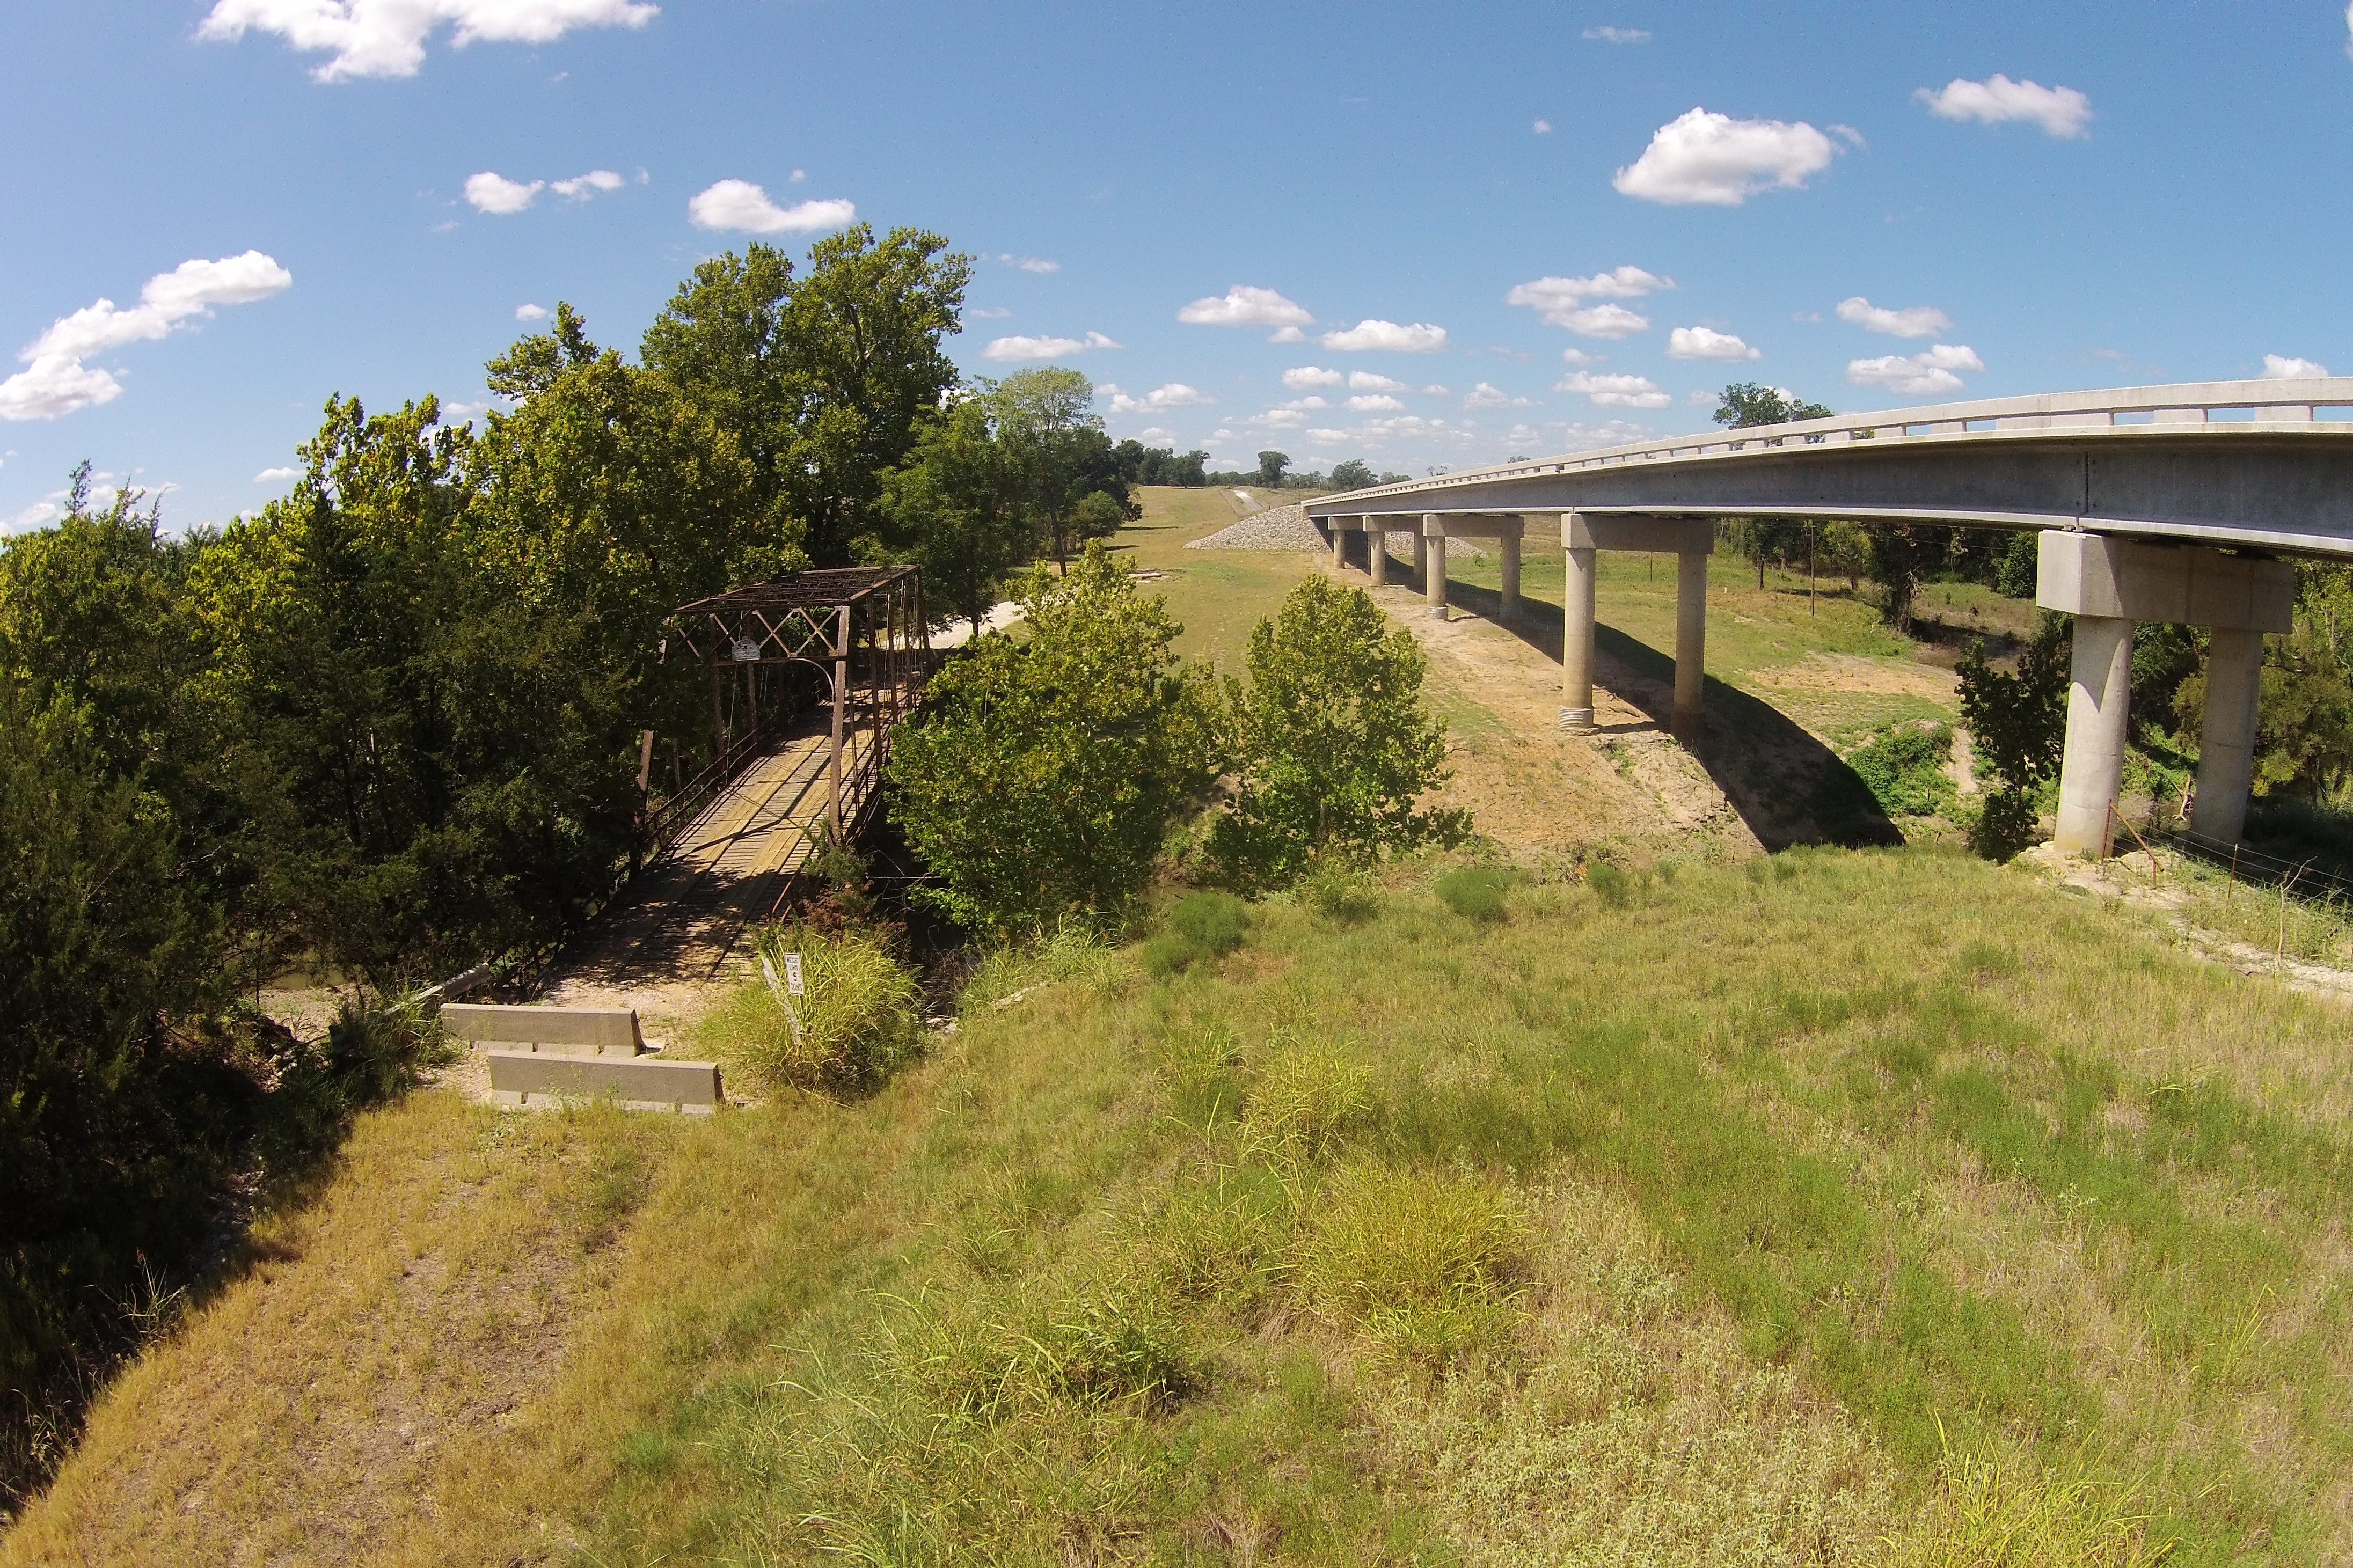 Bridge 20 over Clear Boggy Creek